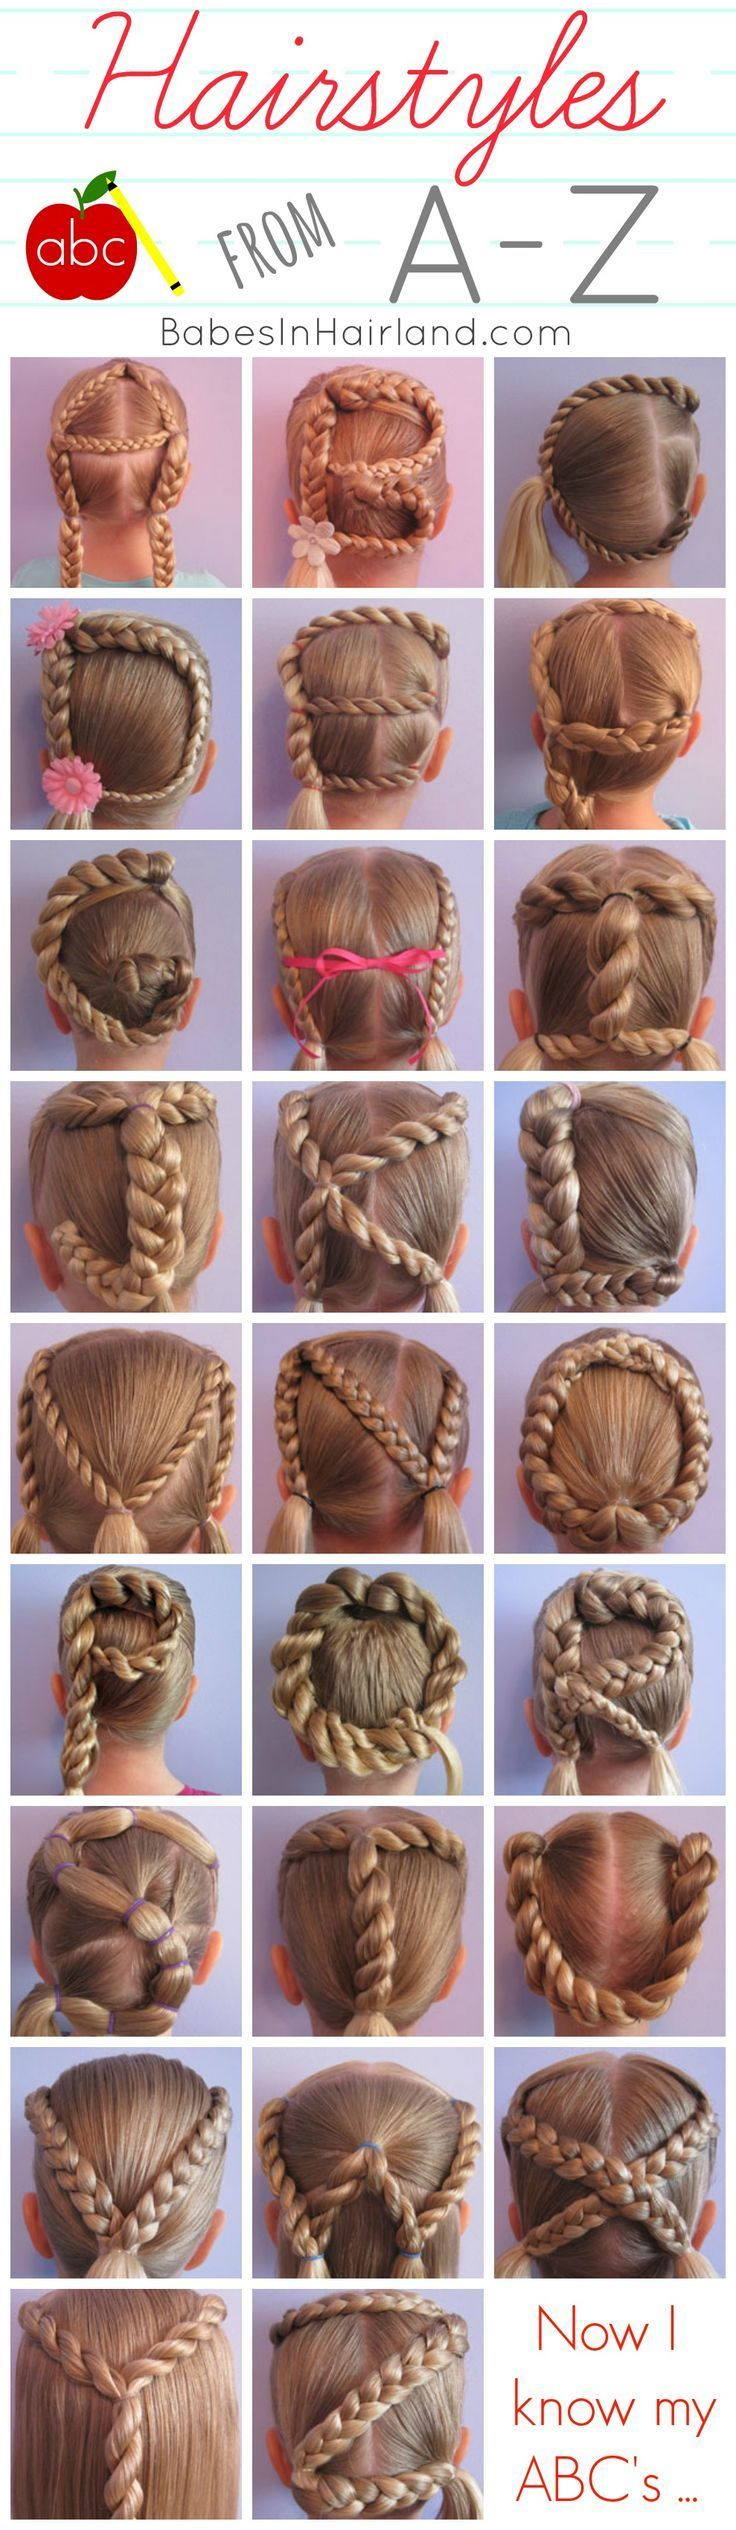 Pin By Wedge Hairstyles On Wedge Hairstyles Layered Hair Styles